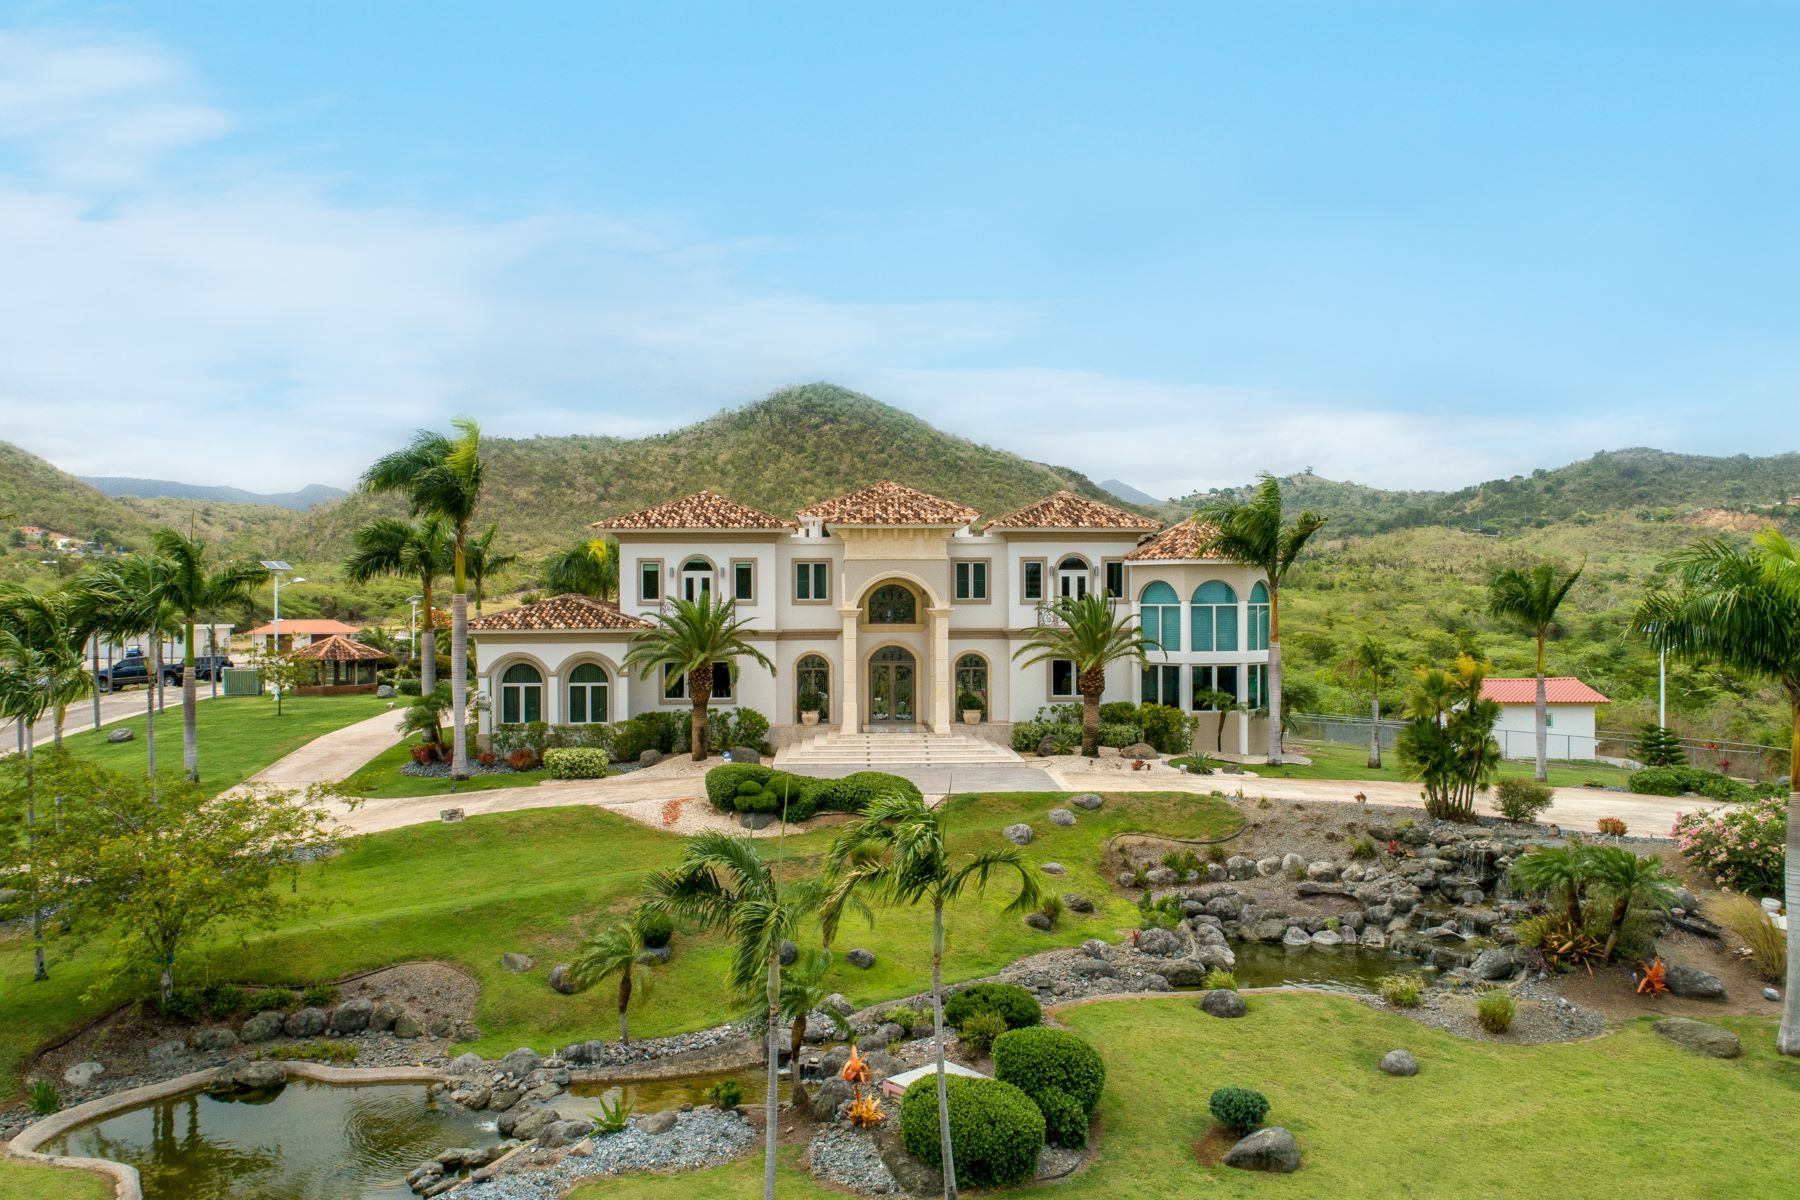 Ферма / ранчо / плантация для того Продажа на Sustainable Tuscan Masterpiece Country Estate 117 St Km 11.7 Sabana Grande, Puerto Rico 00637 Пуэрто-Рико